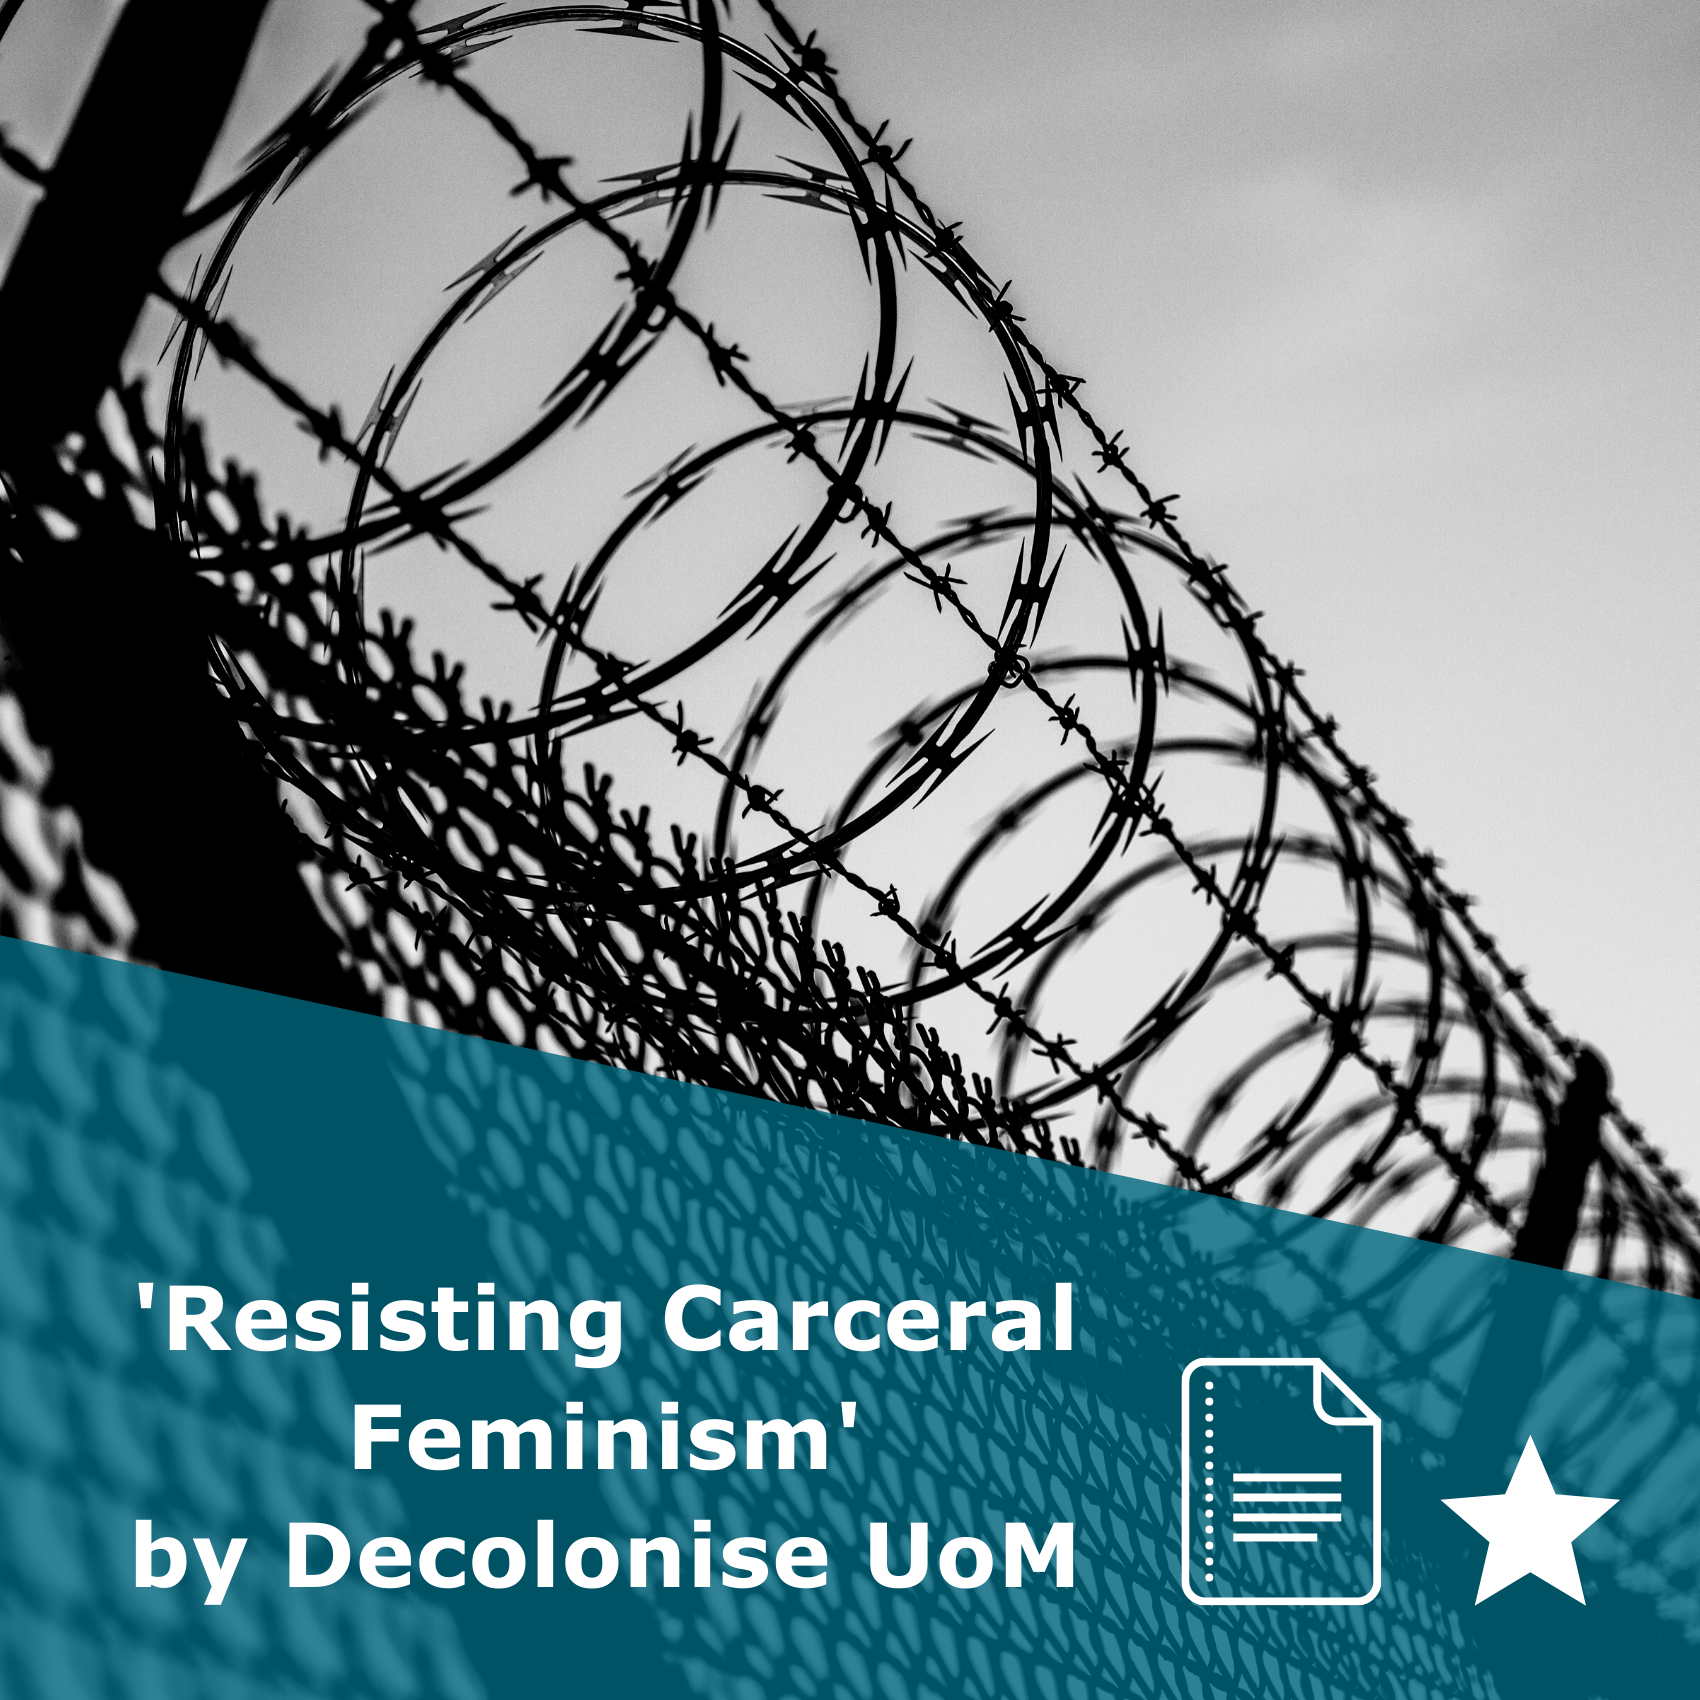 Picture of a prison. Title Resisting Carceral Feminism by Decolonise UoM. It is an article rated 1 star.